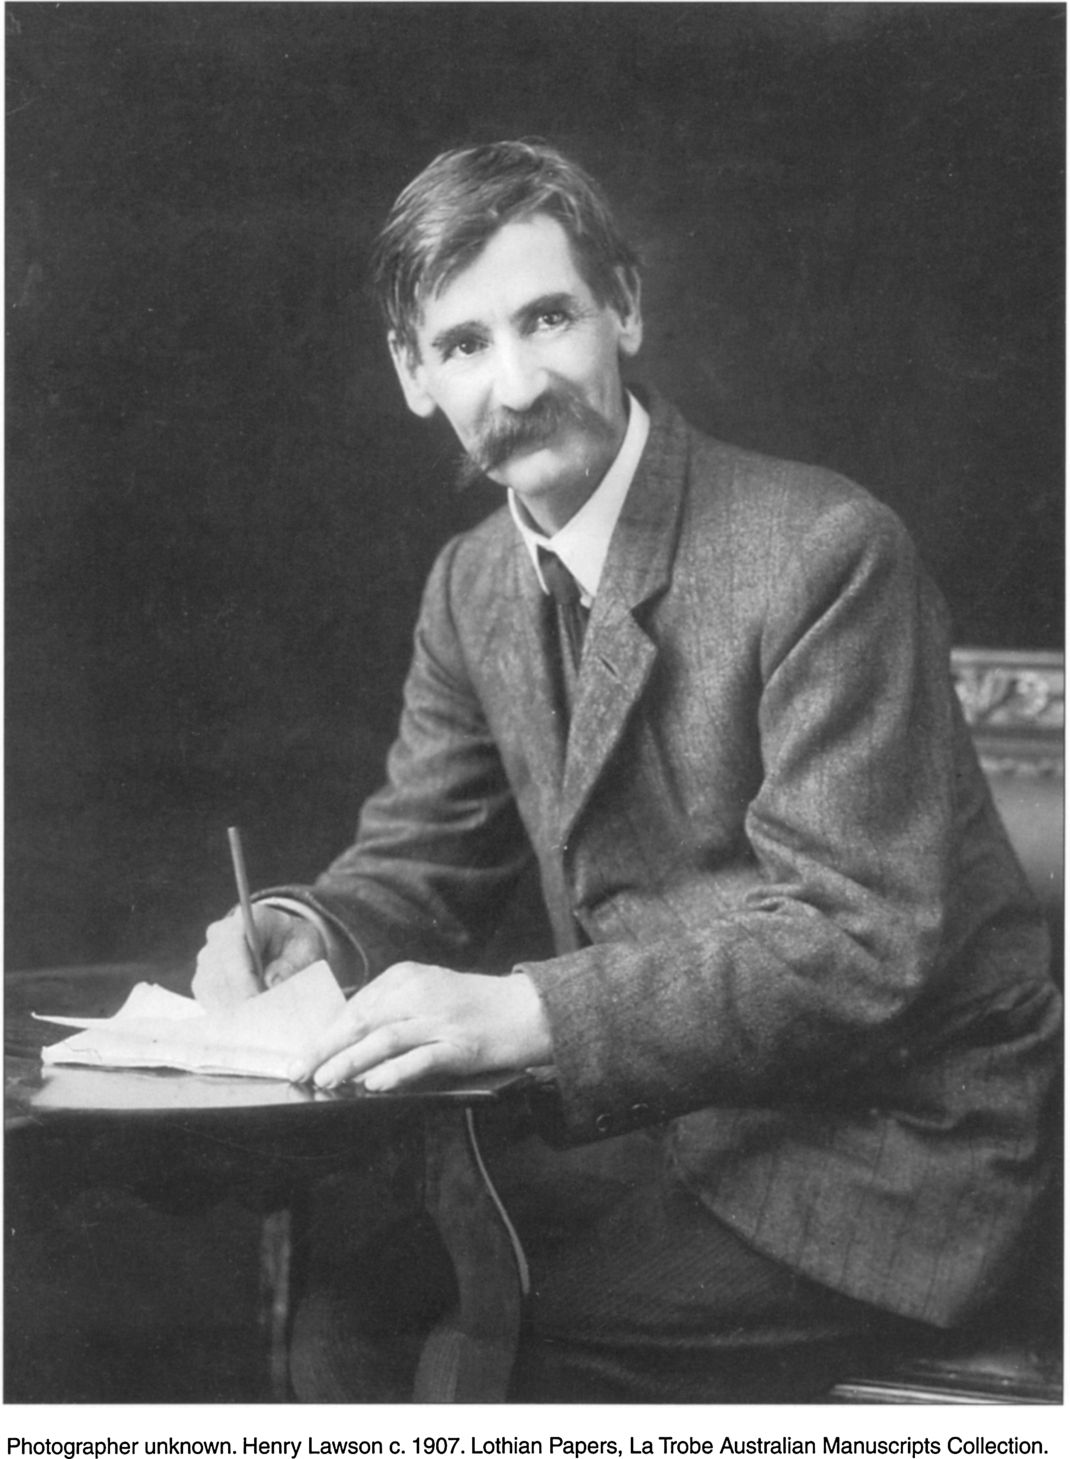 distinctively visual henry lawson speech Speech distinctively visual can be something that is visualized, foreseen or thought of it can be portrayed through forms of language or texts that create images affecting interpretation and shape meaning.